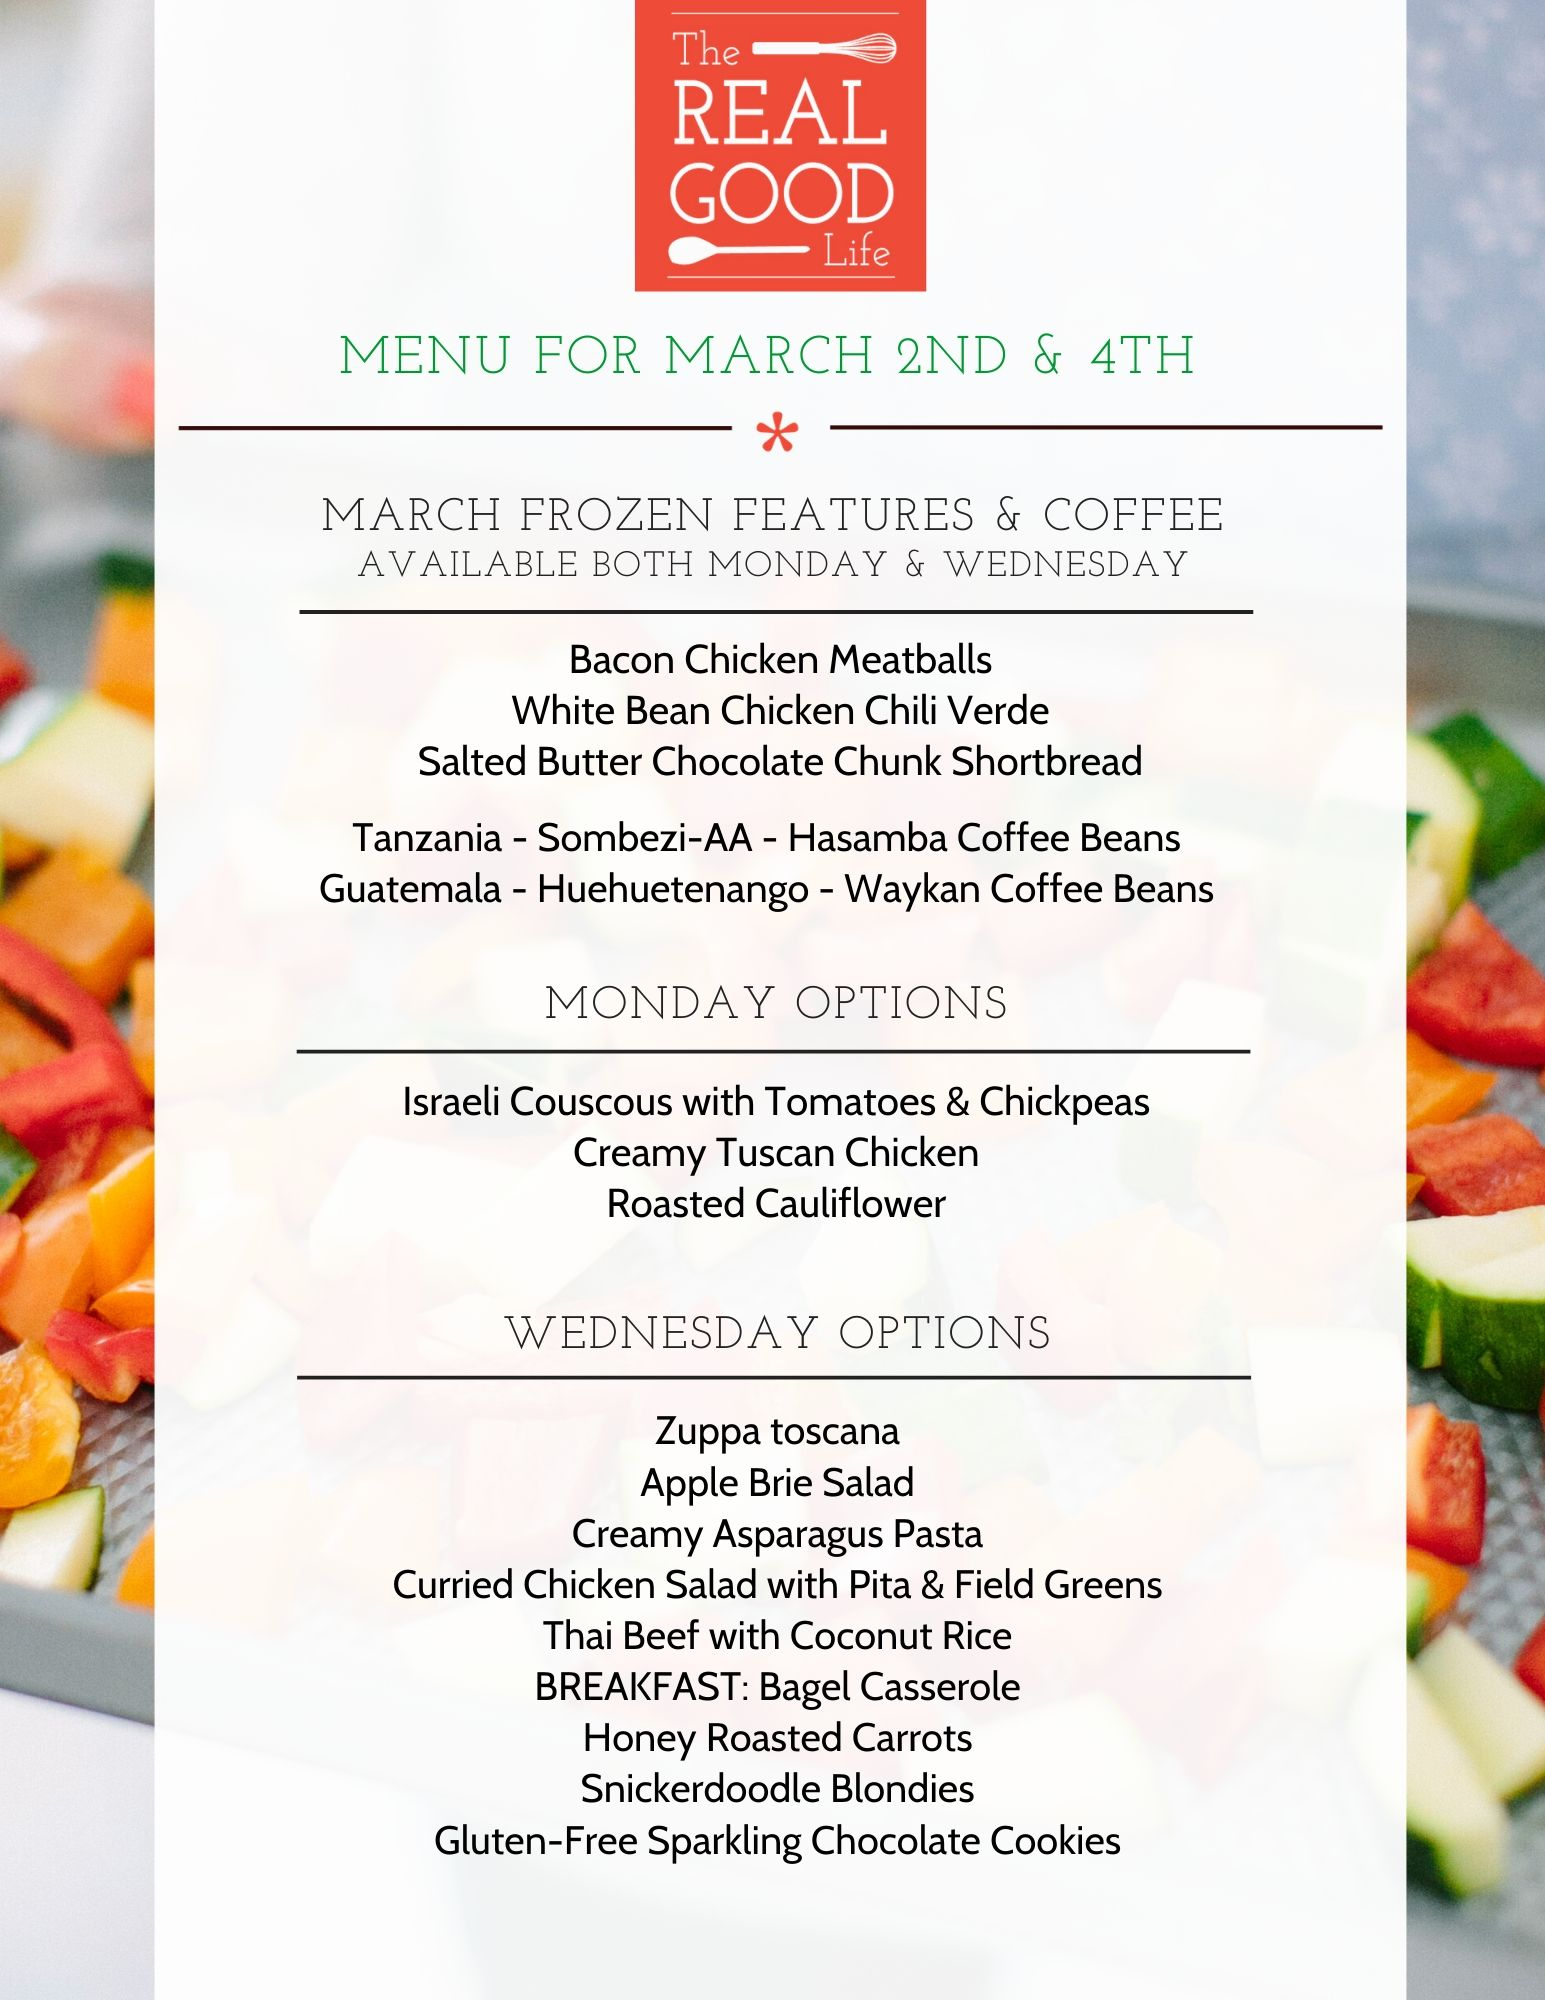 March 2nd and 4th Menu